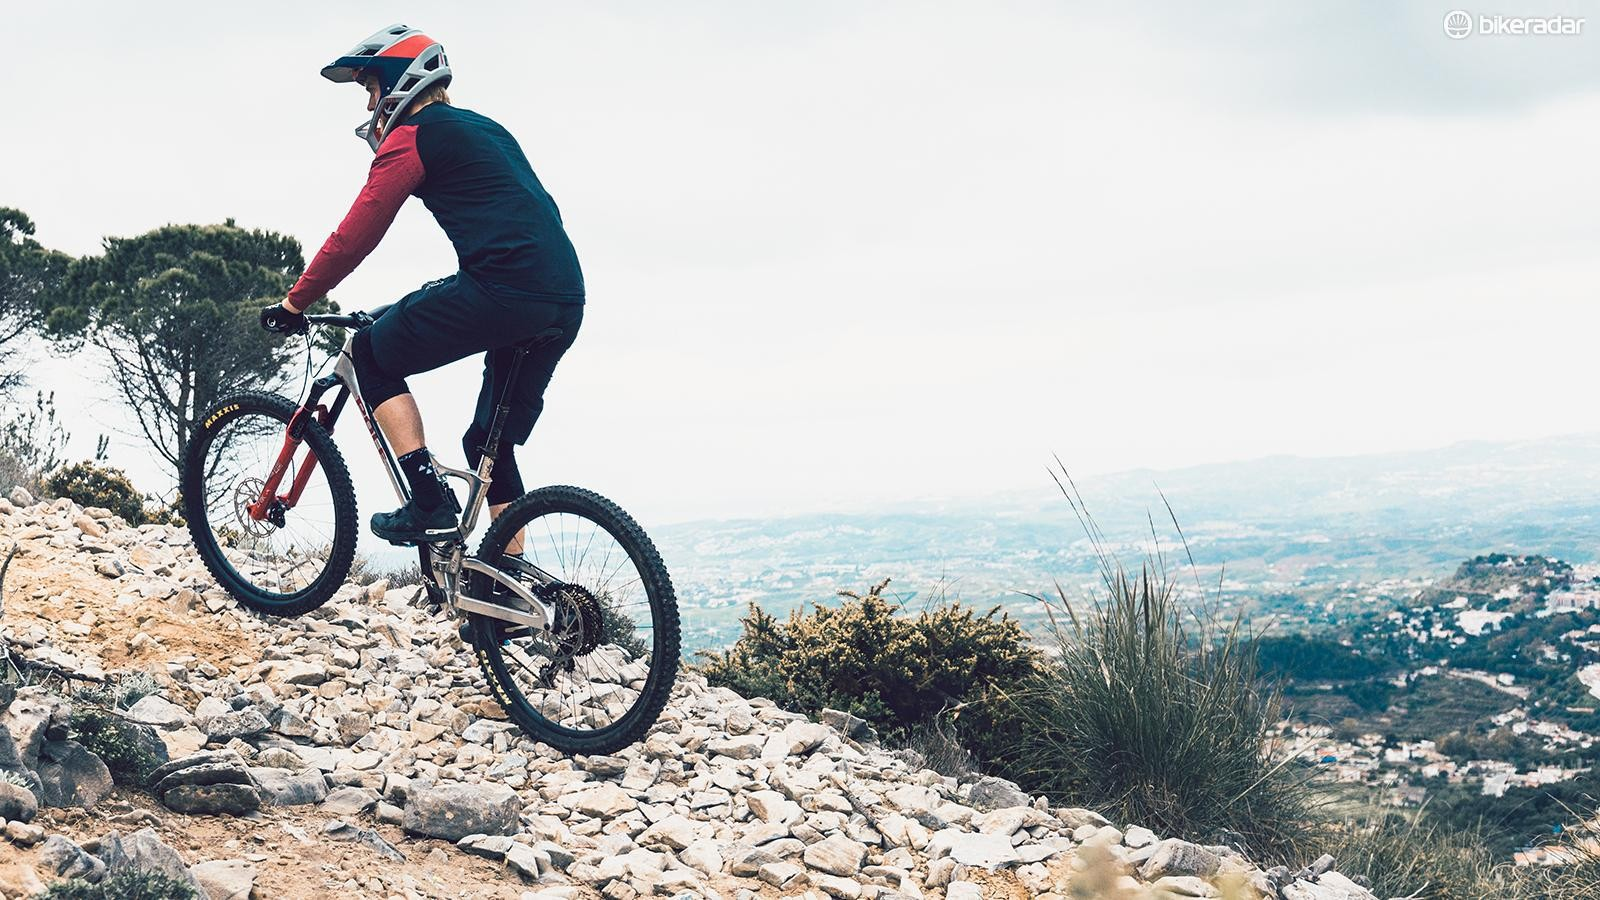 Steeper effective seat angles compensate for suspension compression and uphill gradients